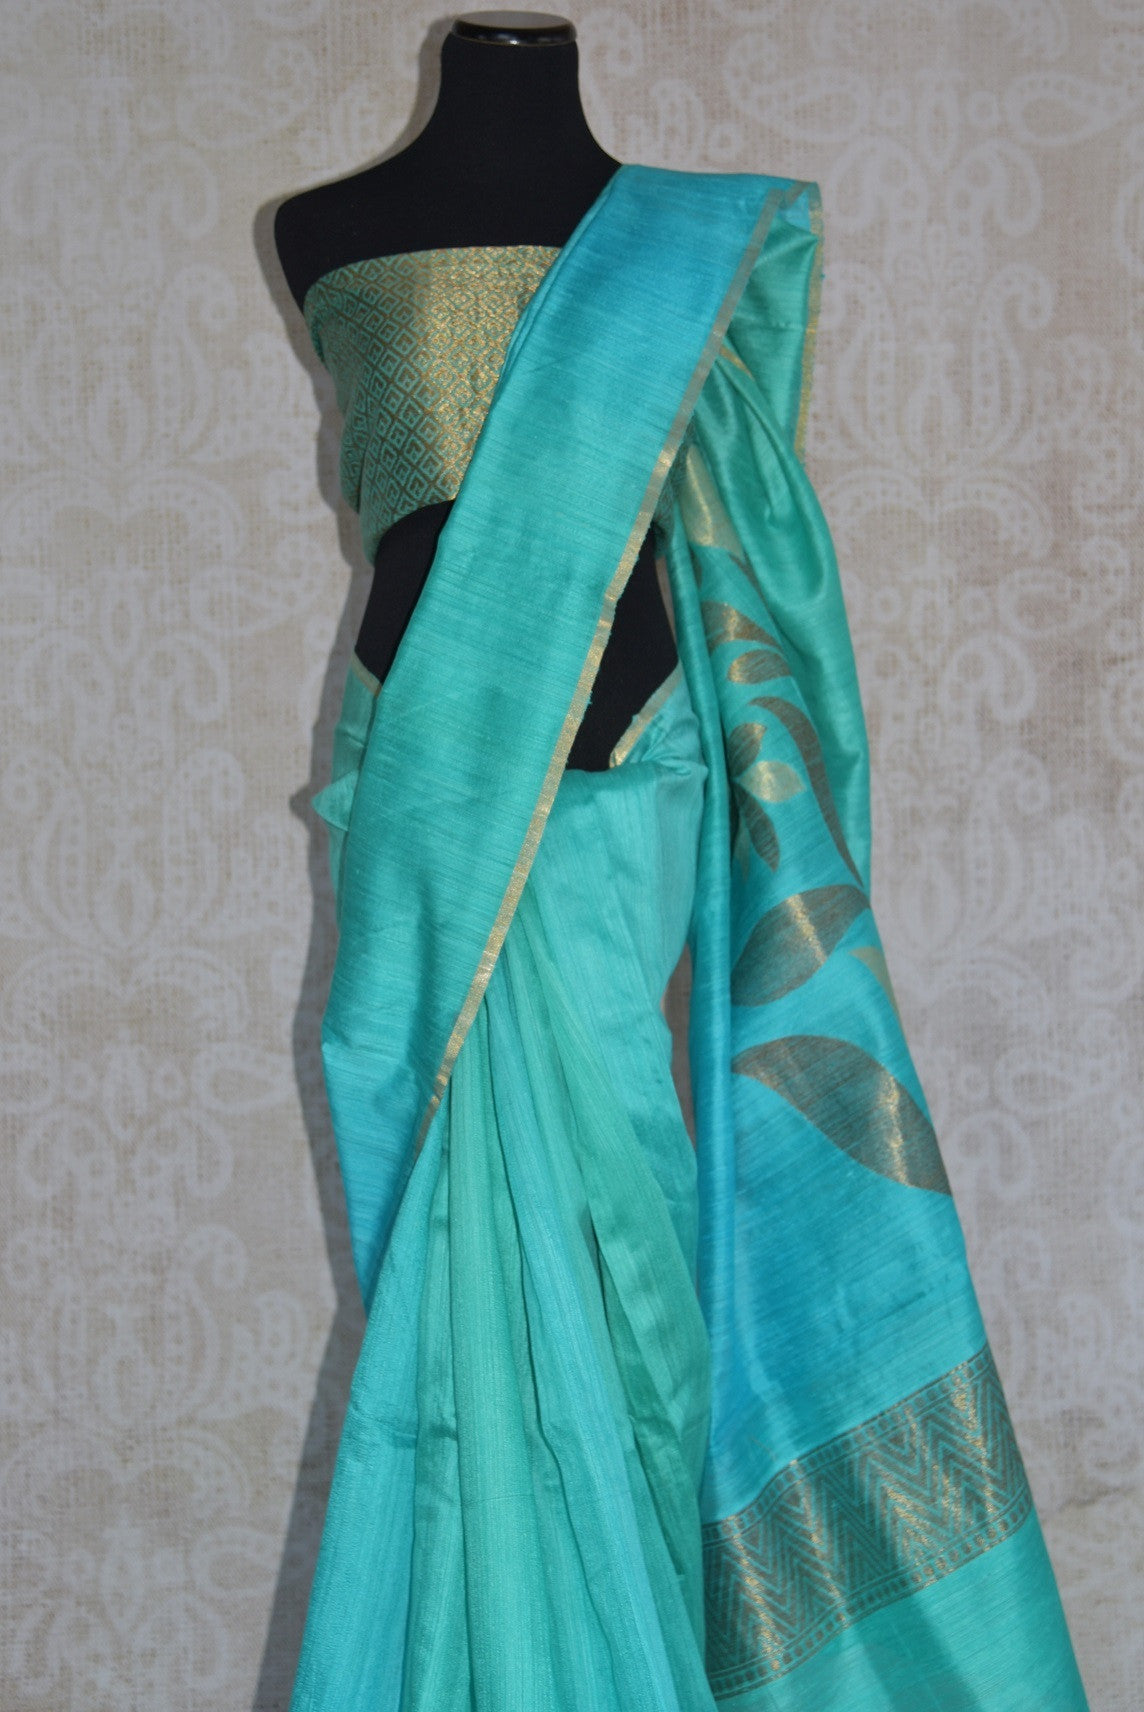 90C277 Buy this blue-green matka Banarasi saree online in USA at our ethnic fashion store - Pure Elegance. Topped with a ravishing zari pallu, this Indian sari is a great pick for festive occasions and pujas.